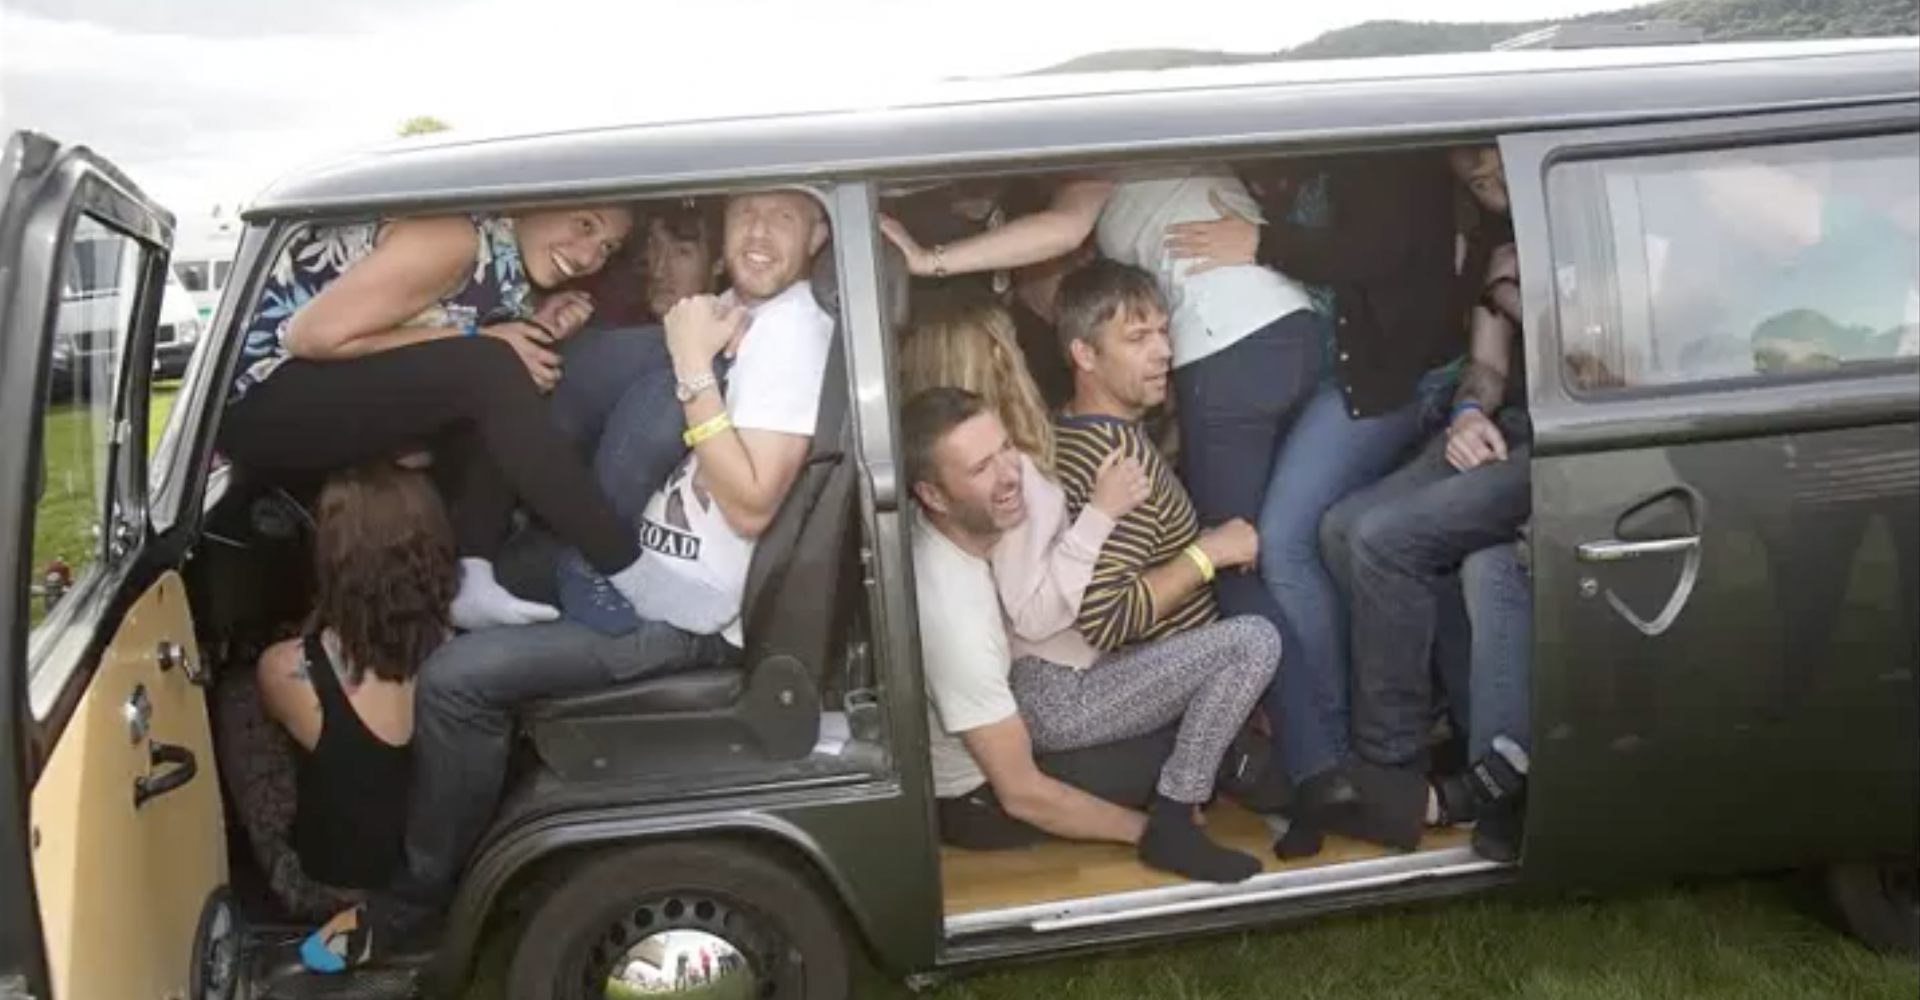 How Many People Can You Squeeze Into A Campervan?